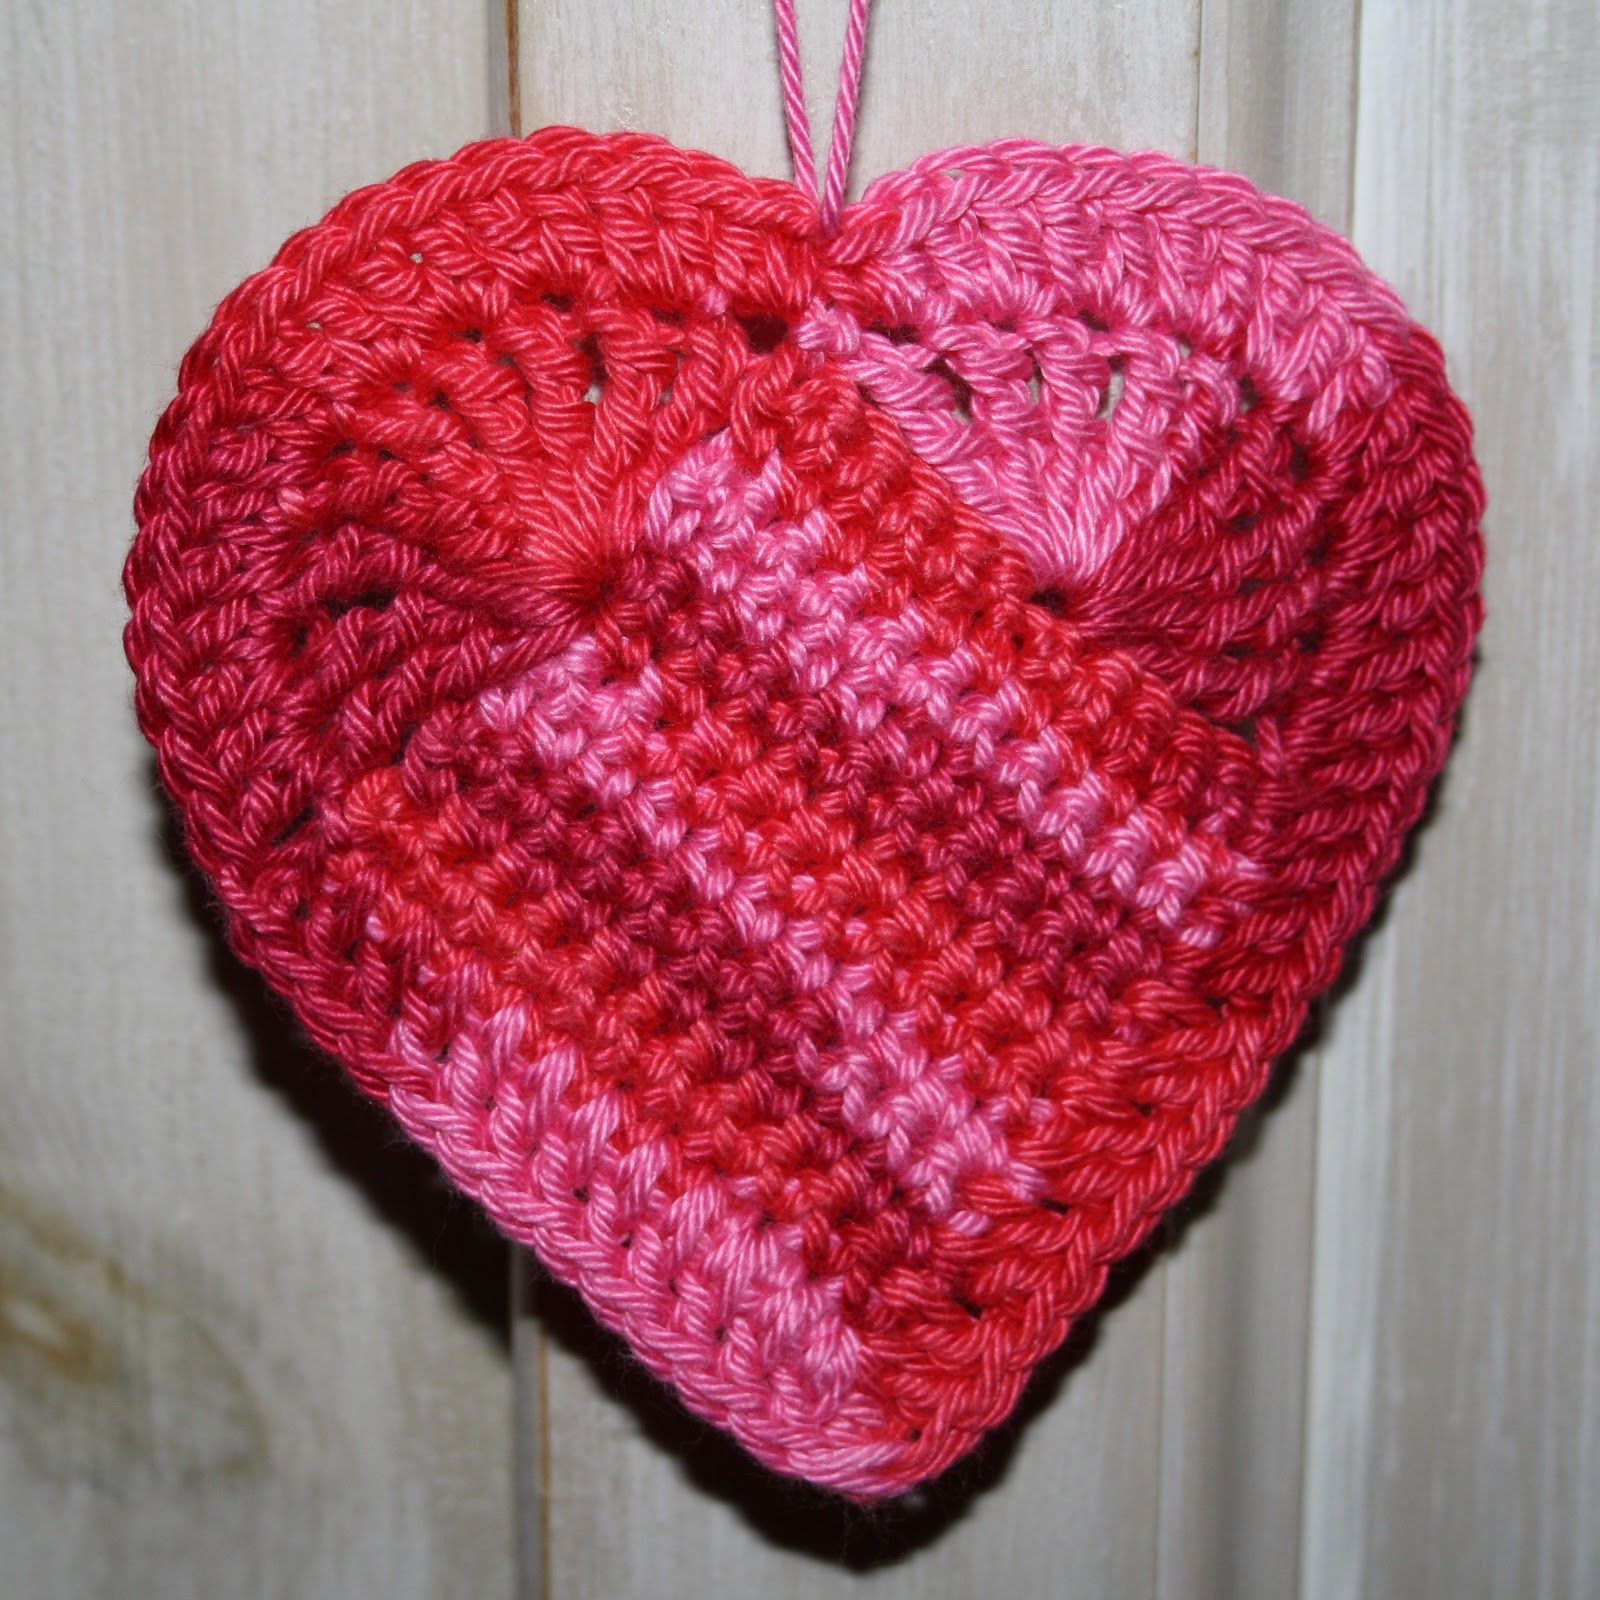 Karin on the hook crocheted heart pattern Haken